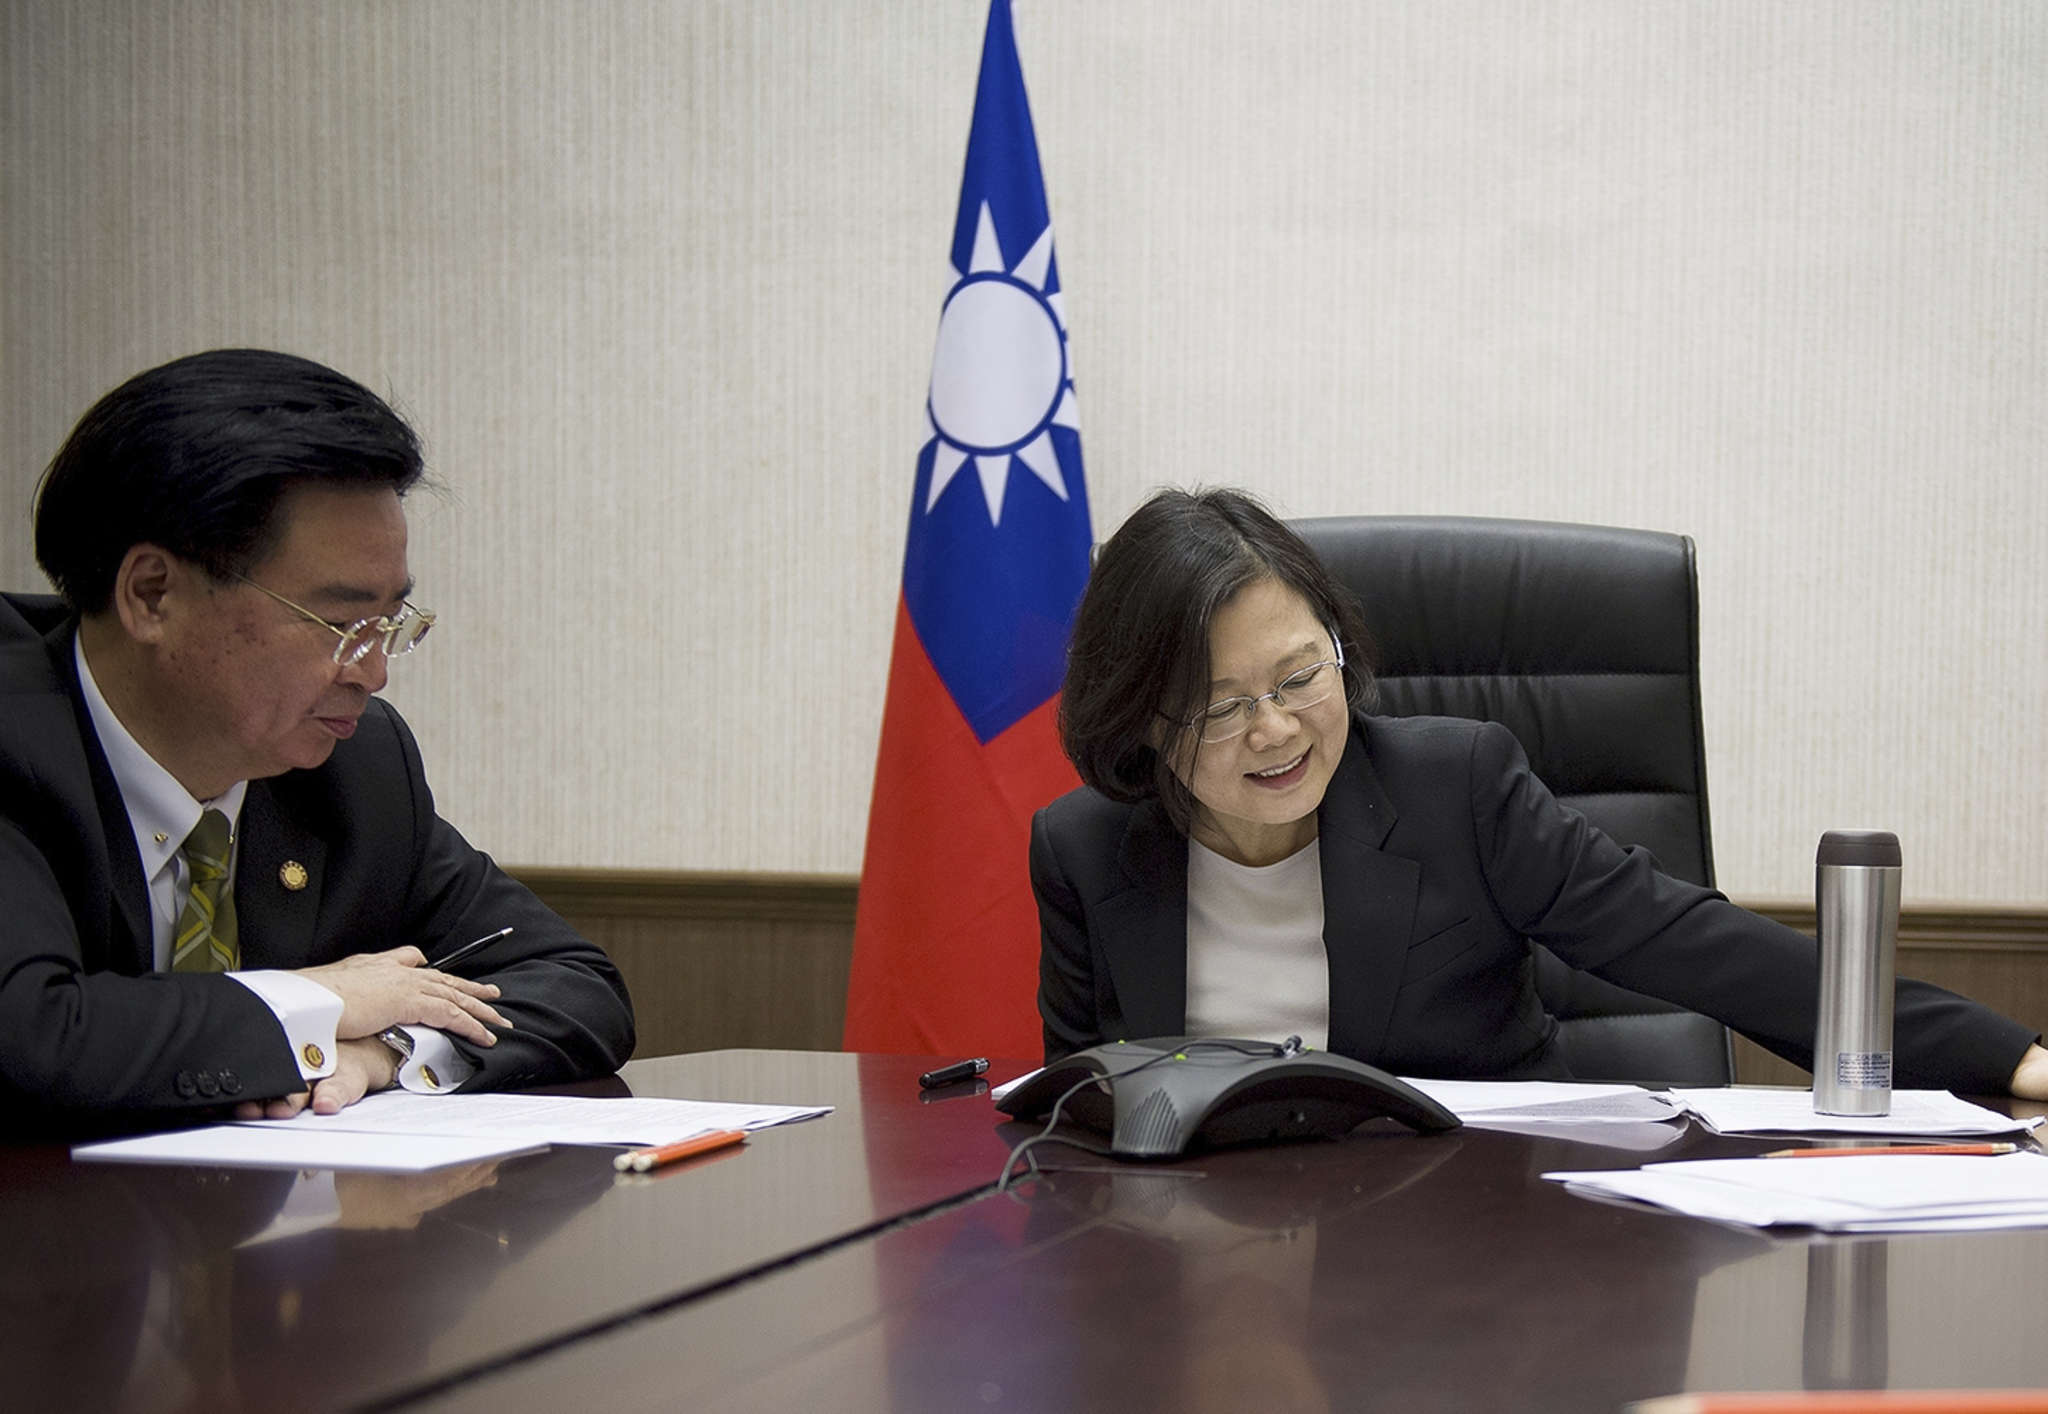 Taiwan President Tsai Ing-wen speaking with President-elect Donald Trump on Dec. 2 through a speaker phone in Taipei. With her is Joseph Wu, National Security Council secretary-general.